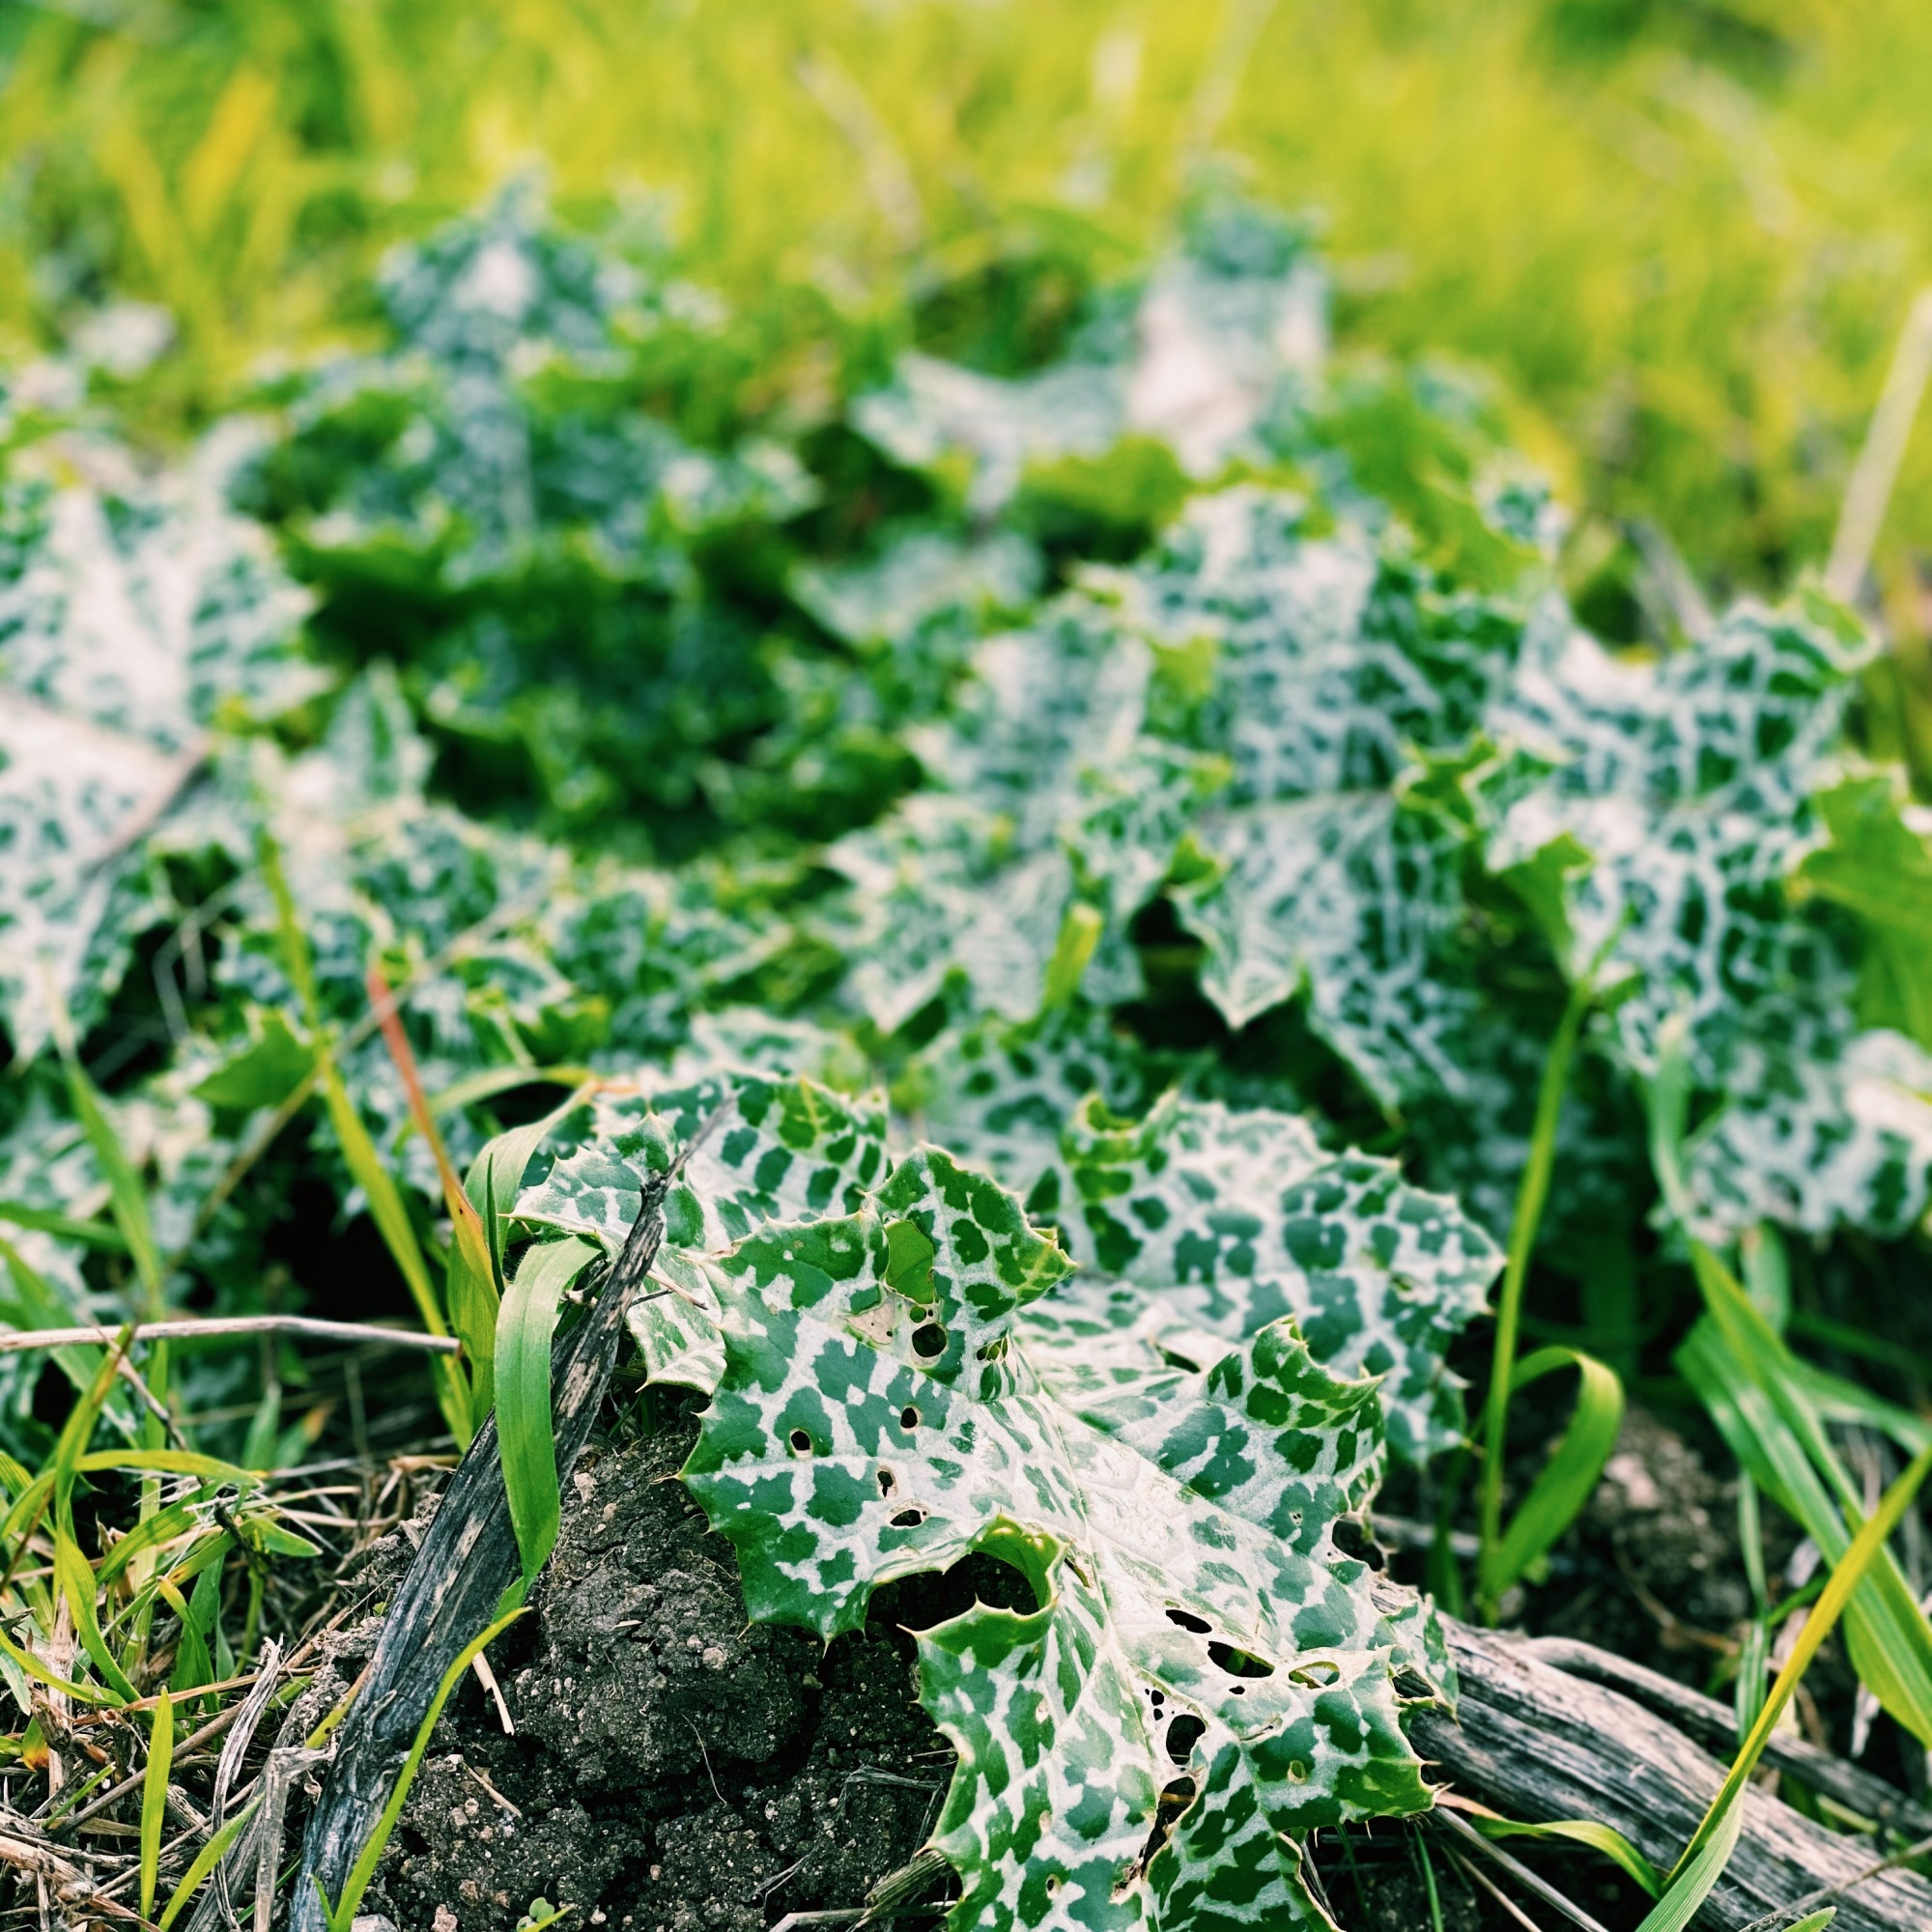 a vibrant, close up shot of a leafy forest-green weed with white speckling amidst the grass